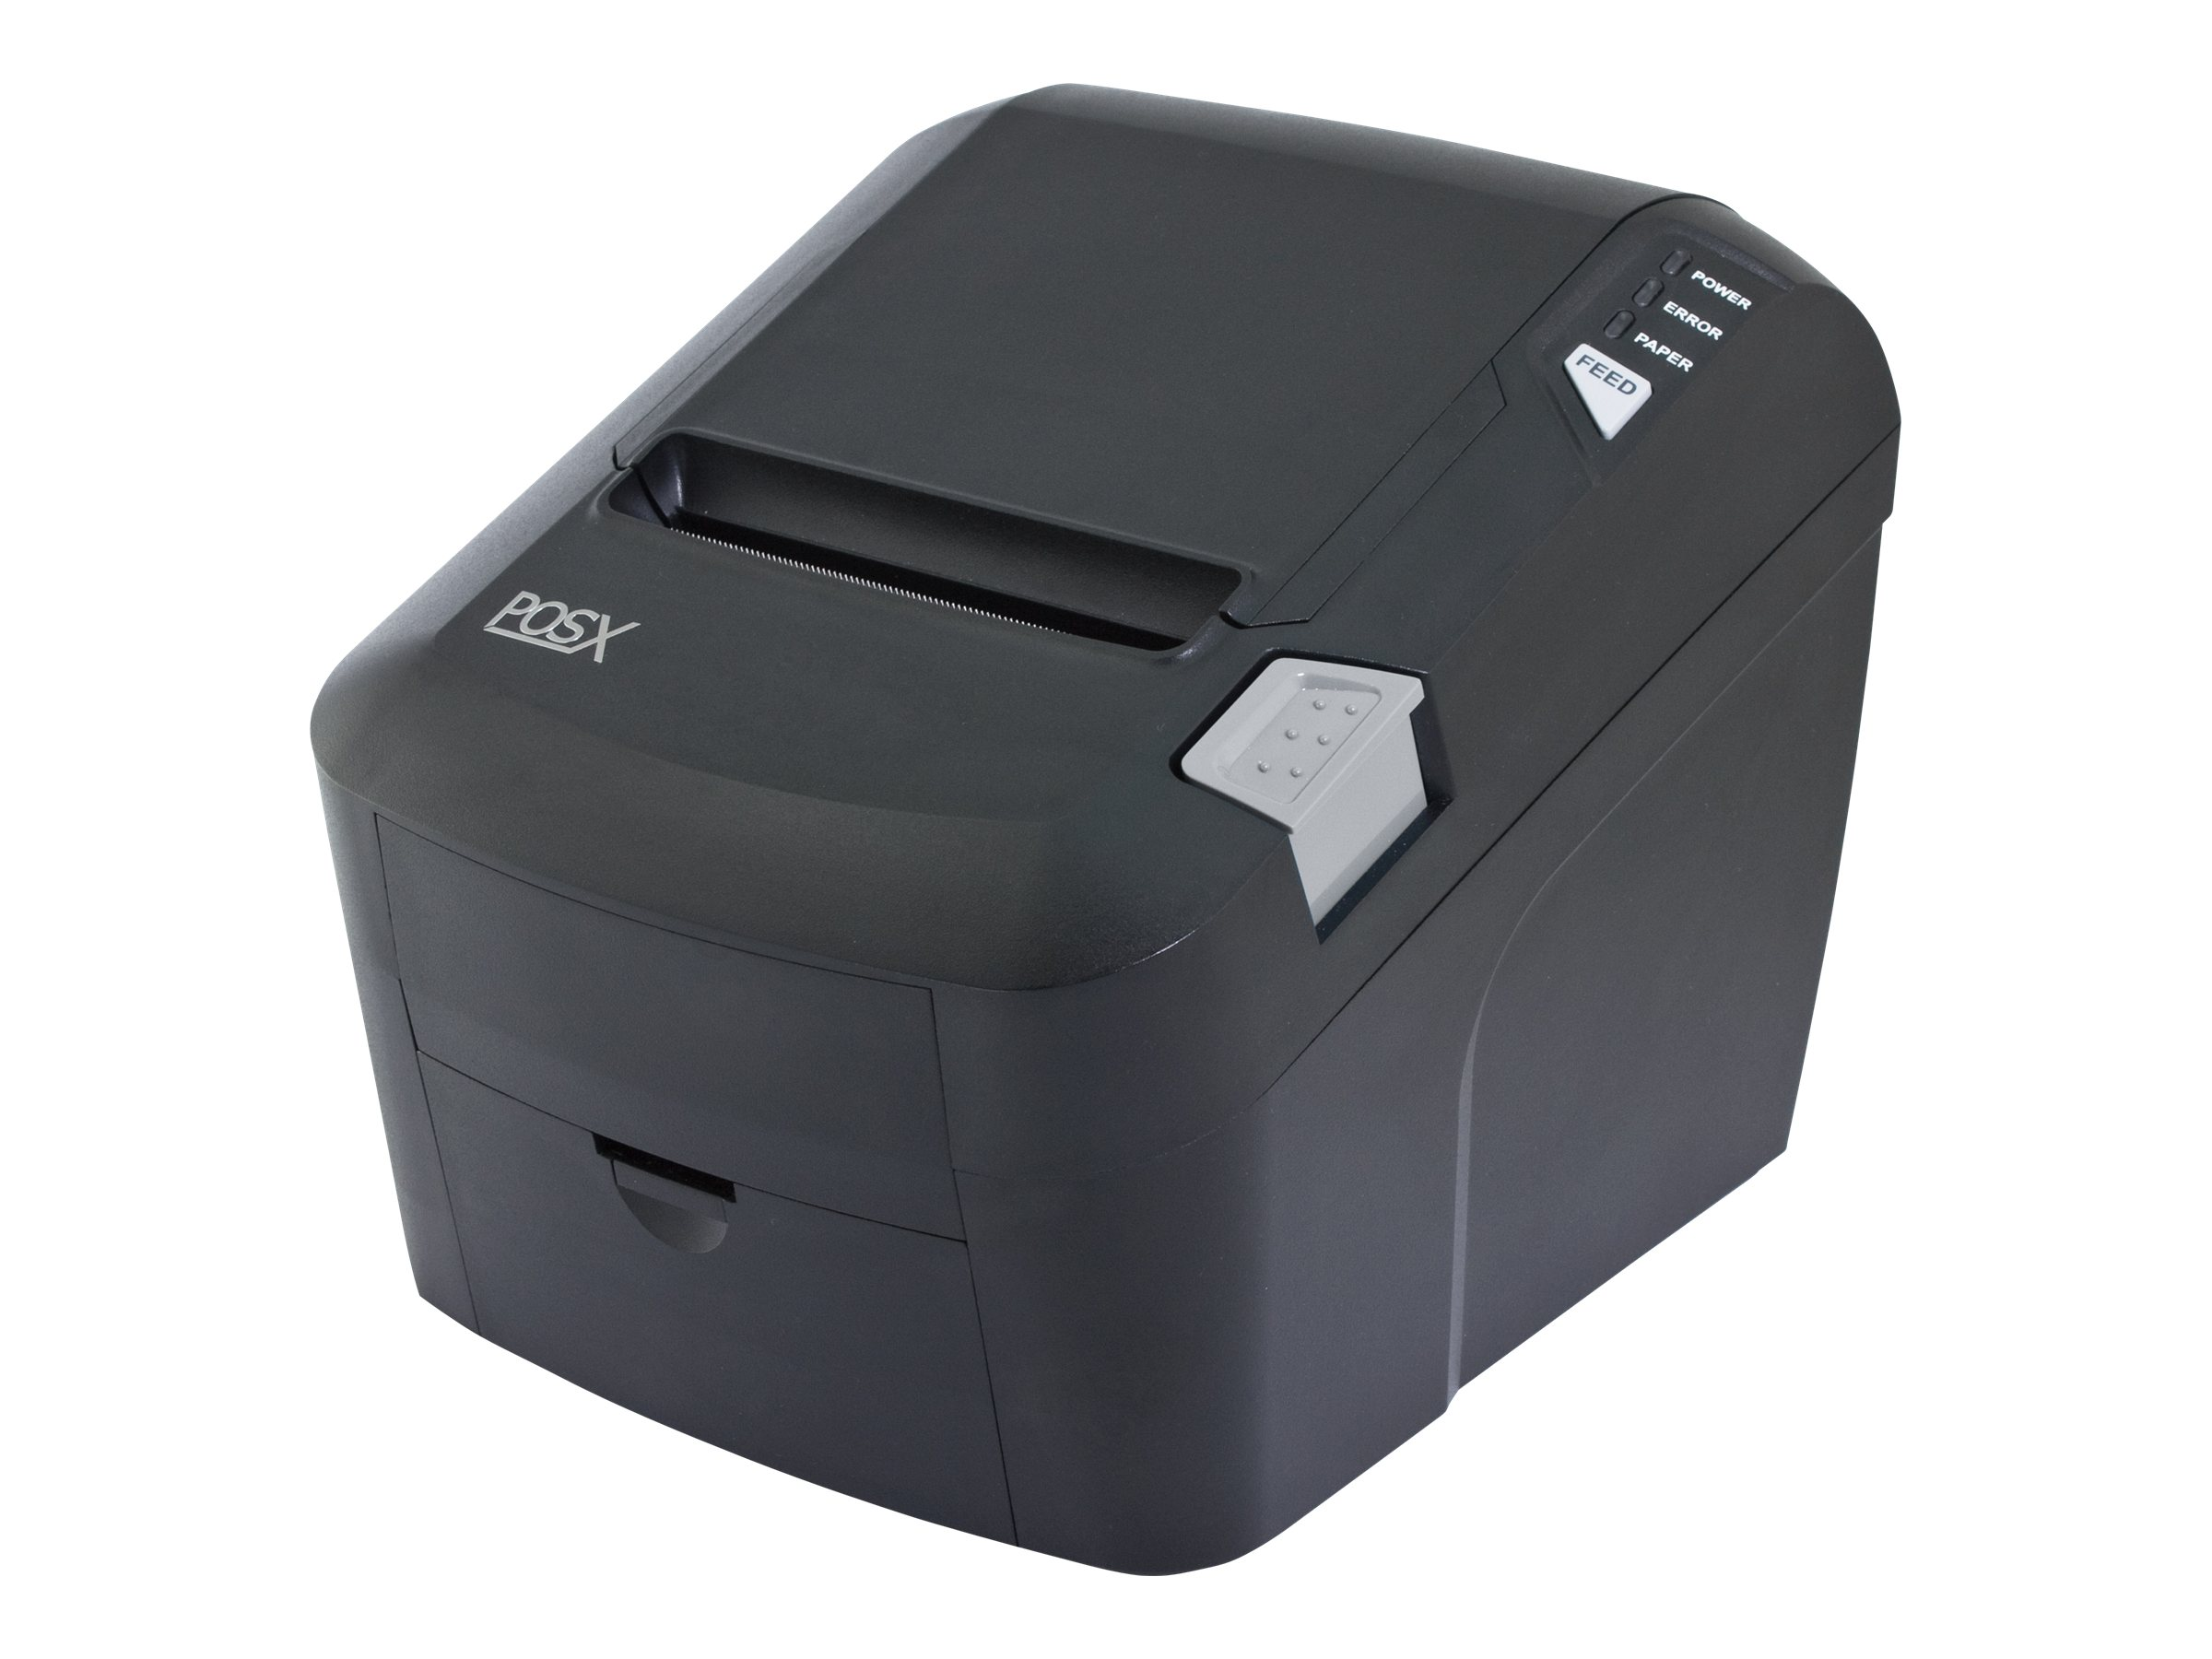 Pos-X EVO HiSpeed USB Ethernet Thermal Receipt Printer - Black